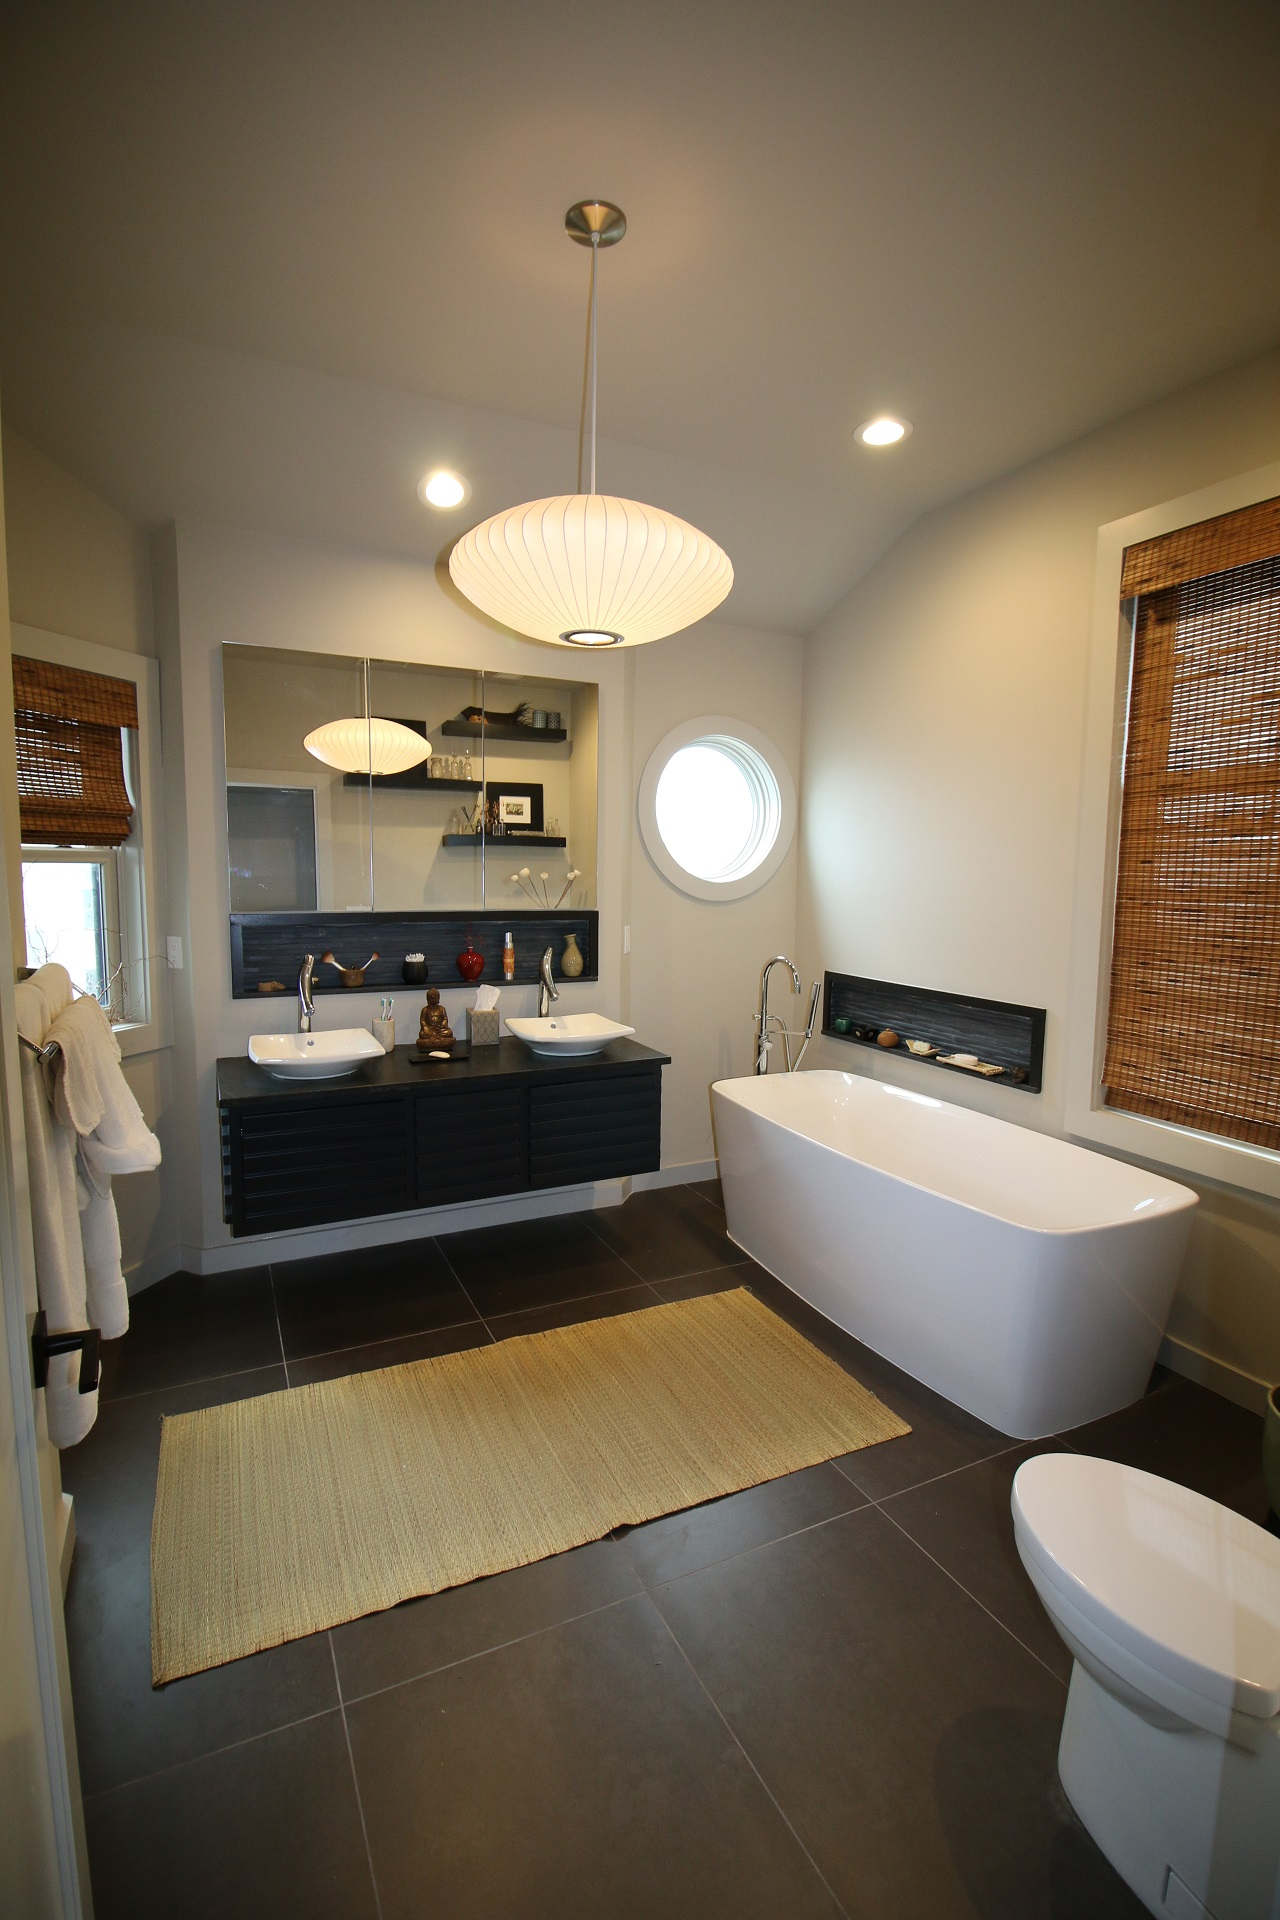 Ideal Kitchens - New Jersey Custom Kitchens and Cabinets on somers point nj, high point high school nj, bergen point amusement park bayonne nj, ave point jersey city nj, leeds point nj, 709 point beach nj, cape may point nj, pleasant beach nj,